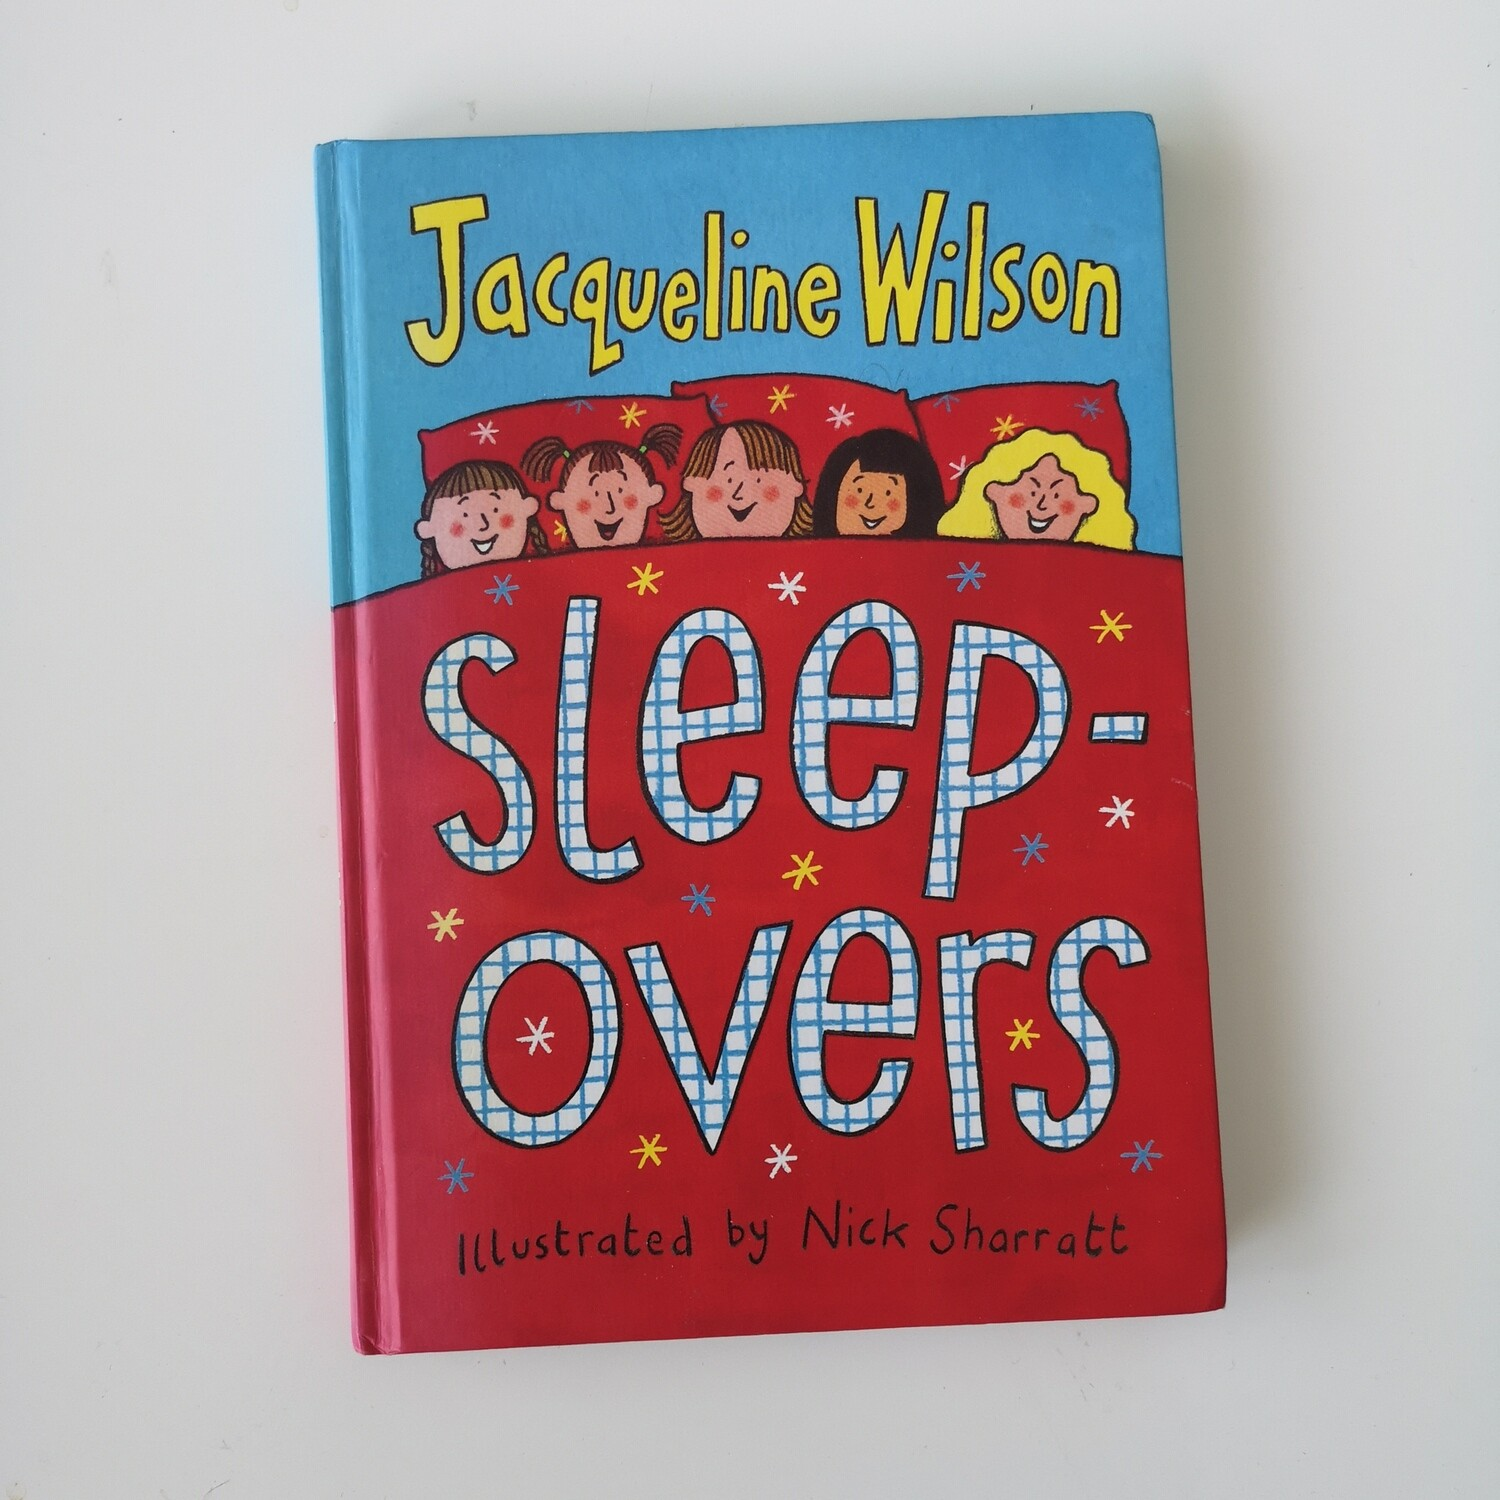 Jacqueline Wilson Notebook - Sleepovers, bed